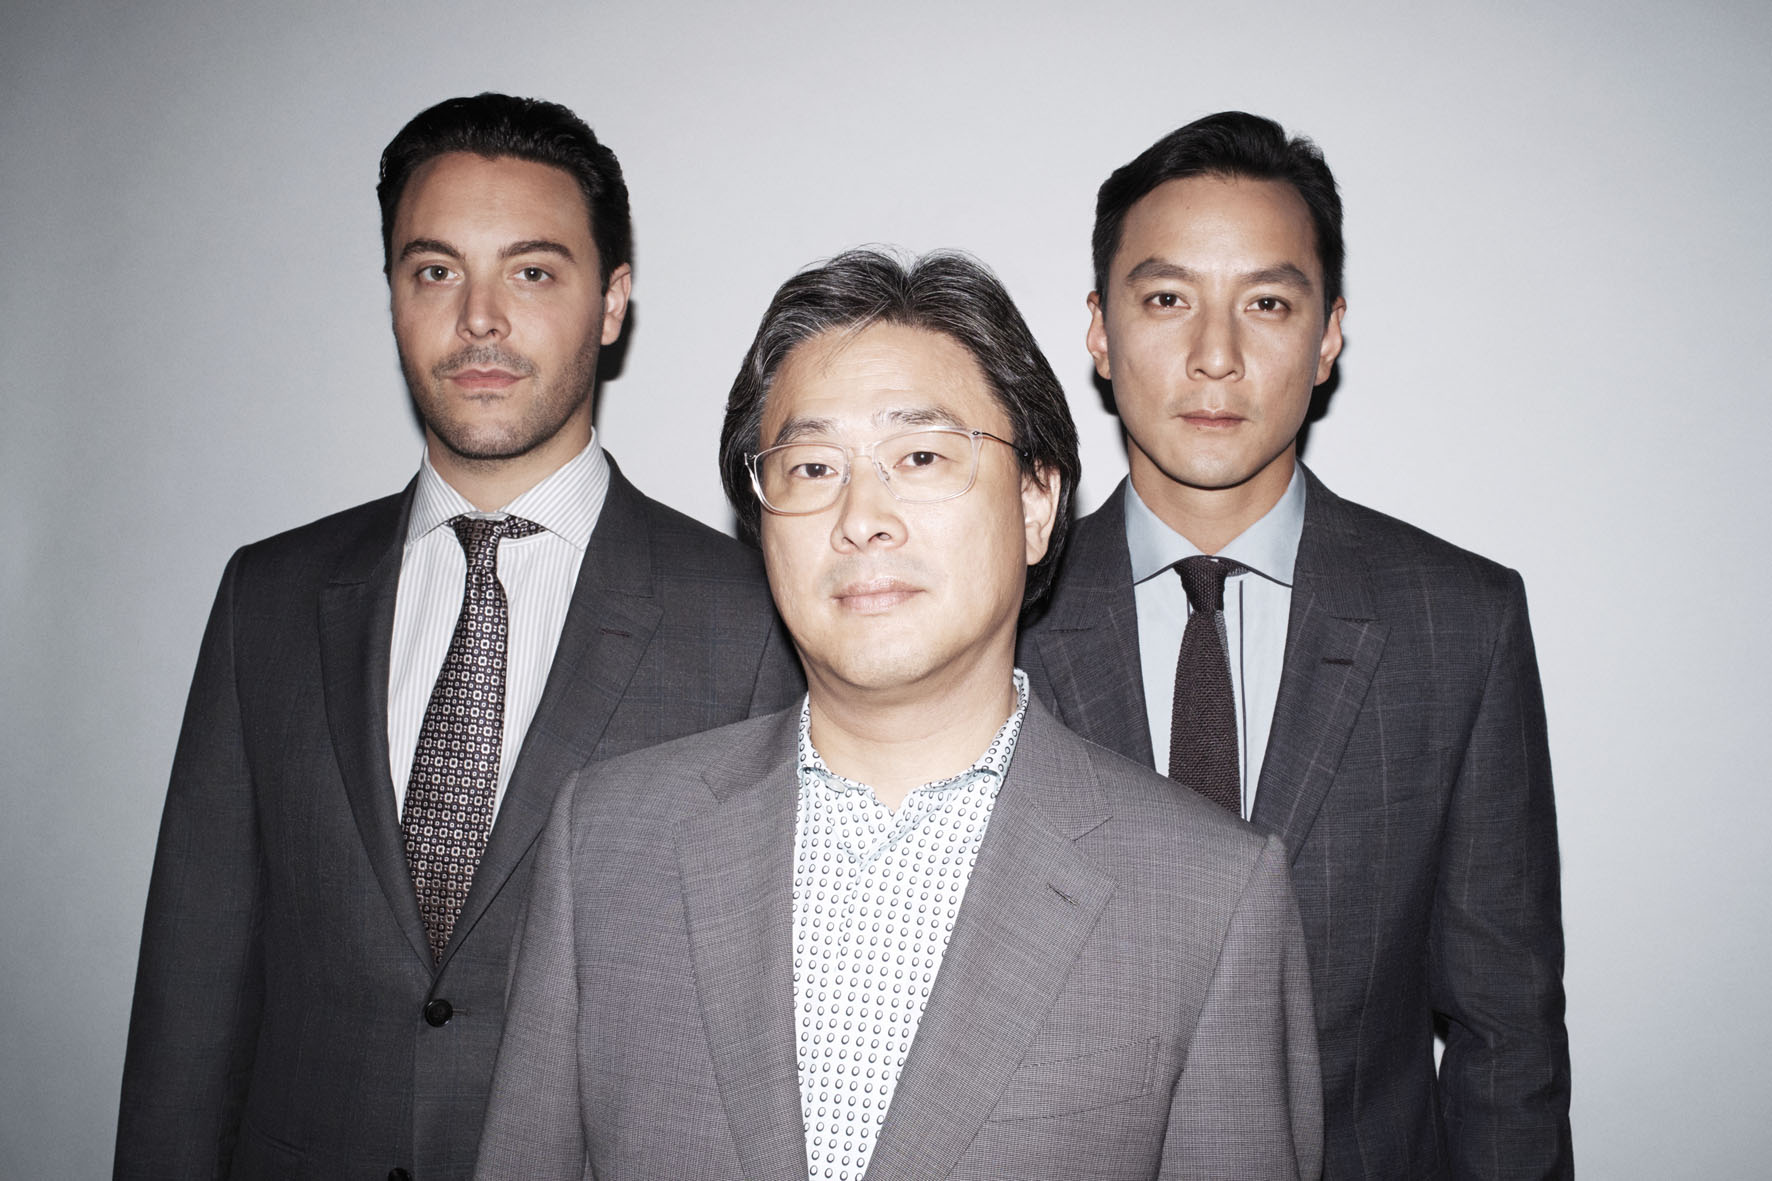 Park Chan-Wook, Jackson Huston and Daniel Wu for  Ermenegildo Zegna | Marco Pietracupa | Ermenegildo Zegna | Numerique Retouch Photo Retouching Studio